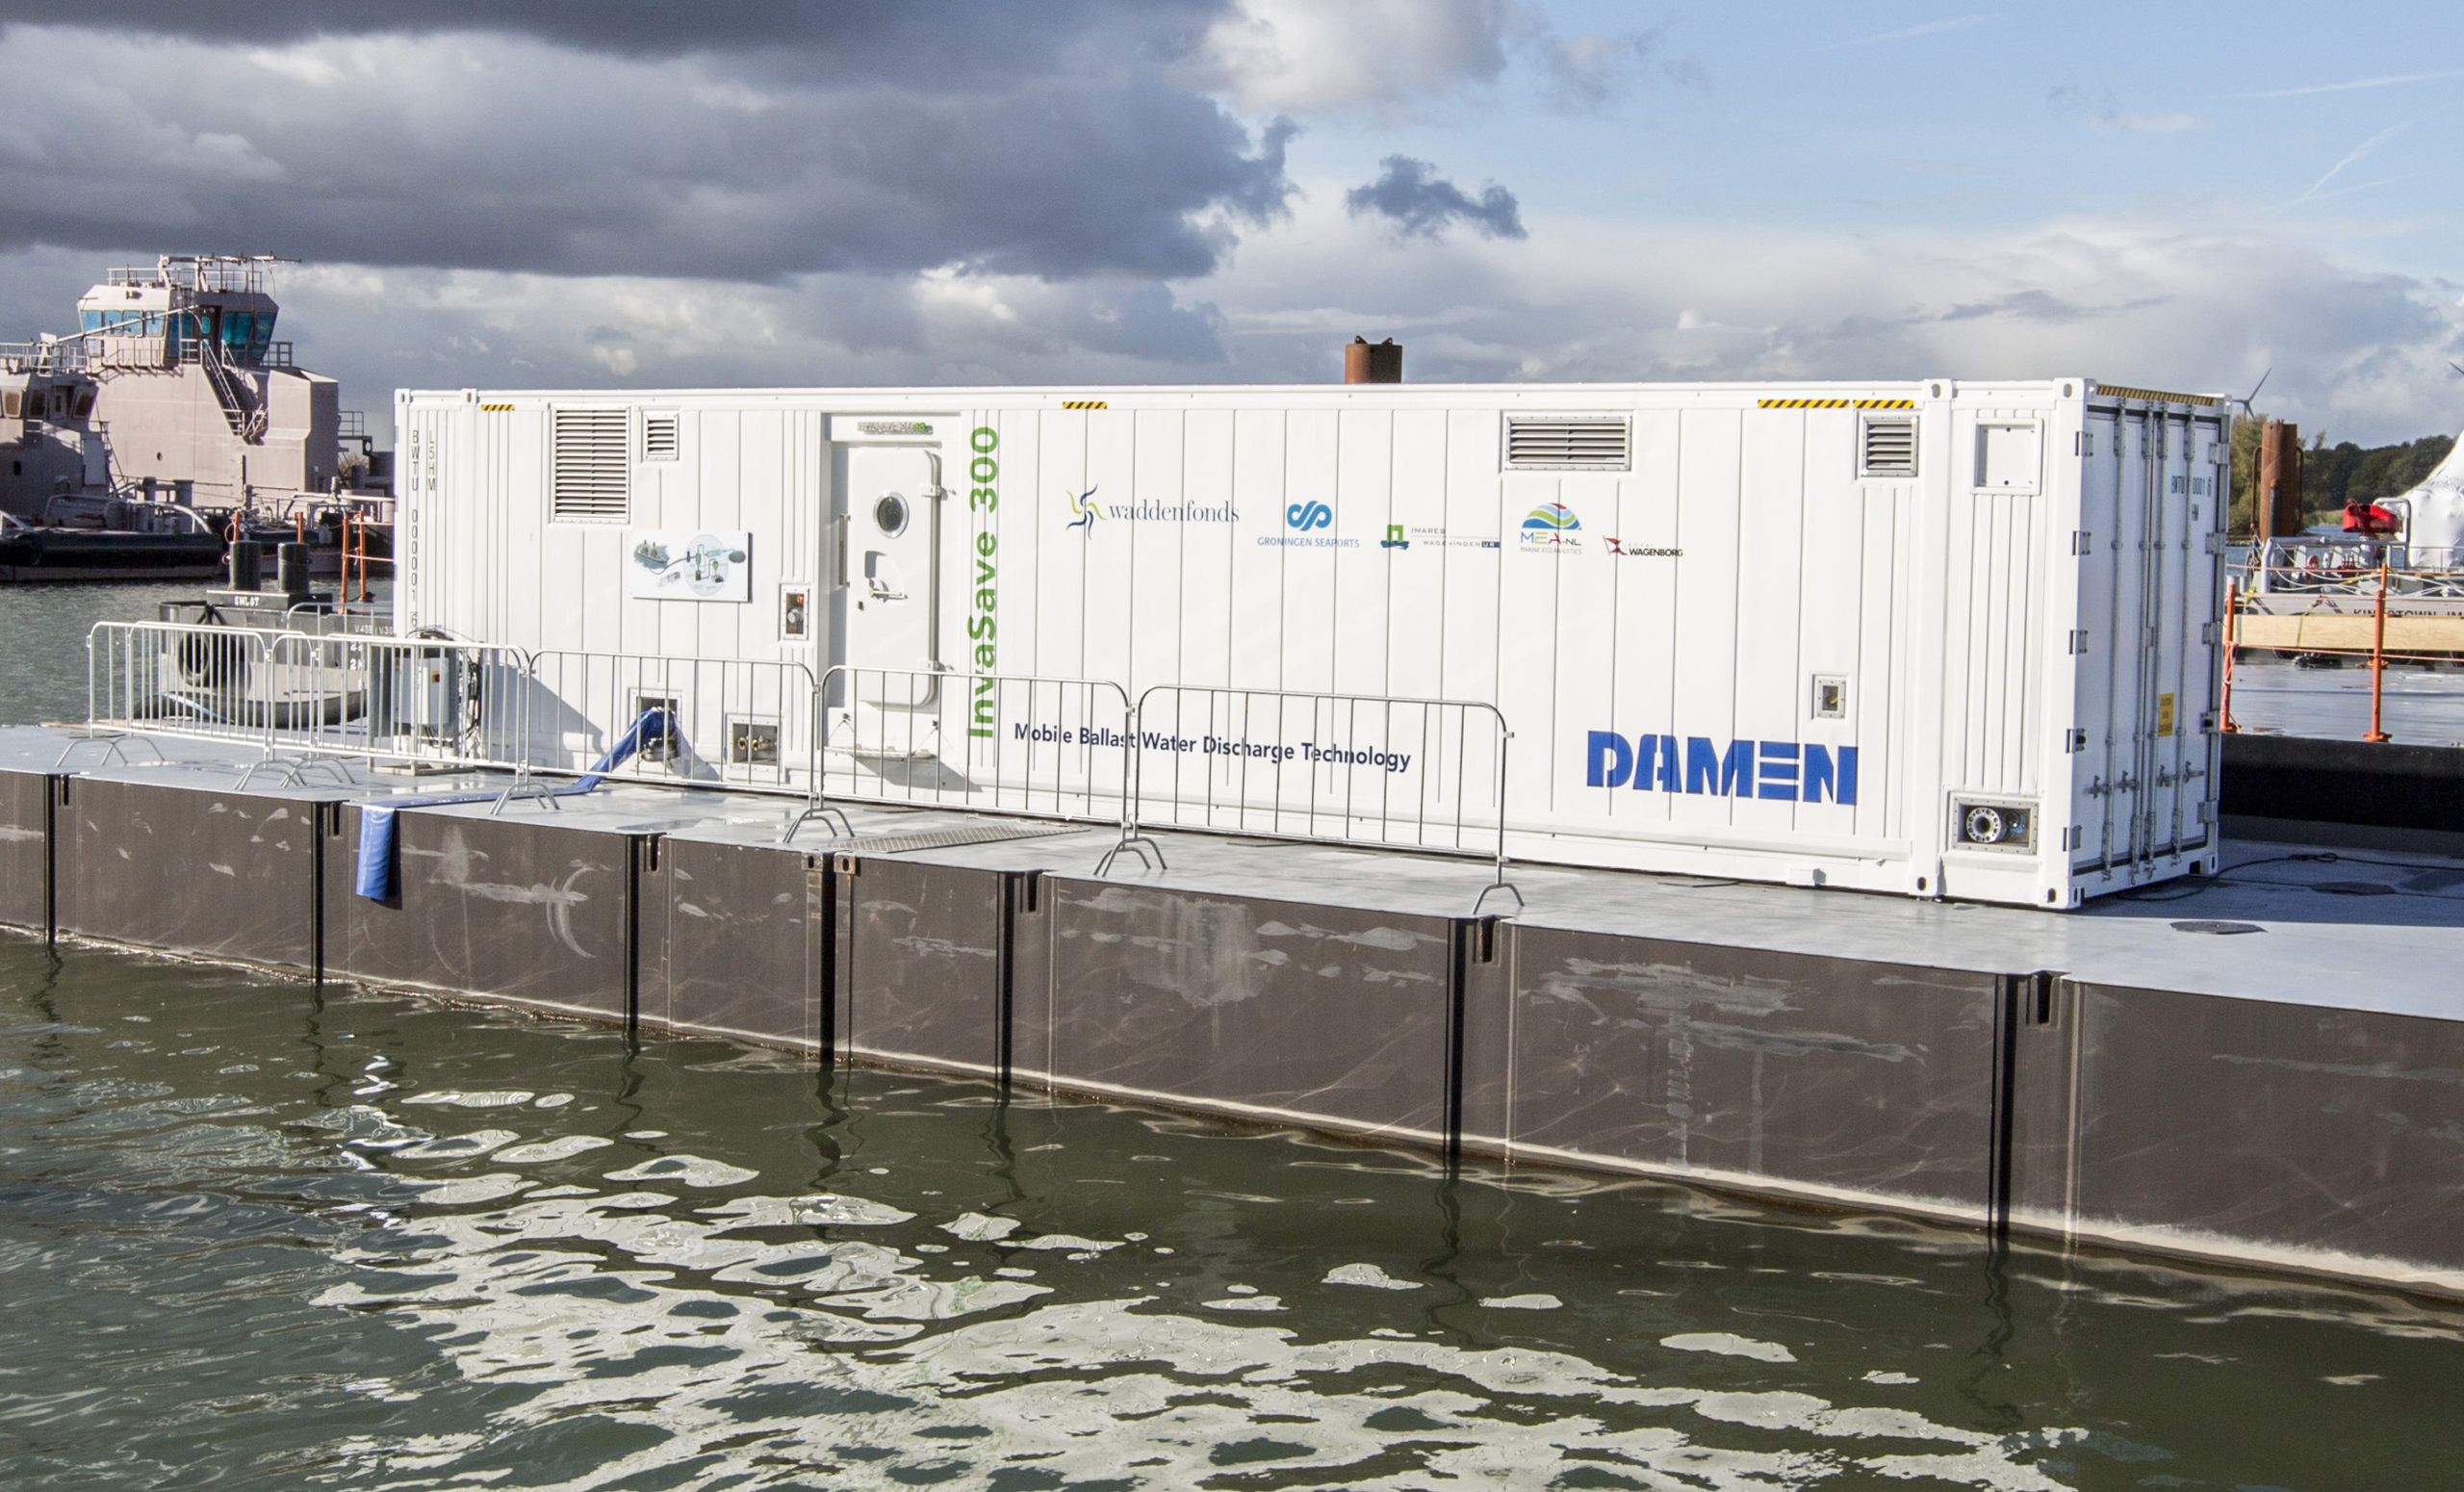 CLIMATE INVESTOR TWO JOINS DAMEN TO FIGHT INVASIVE SPECIES IN BALLAST WATER